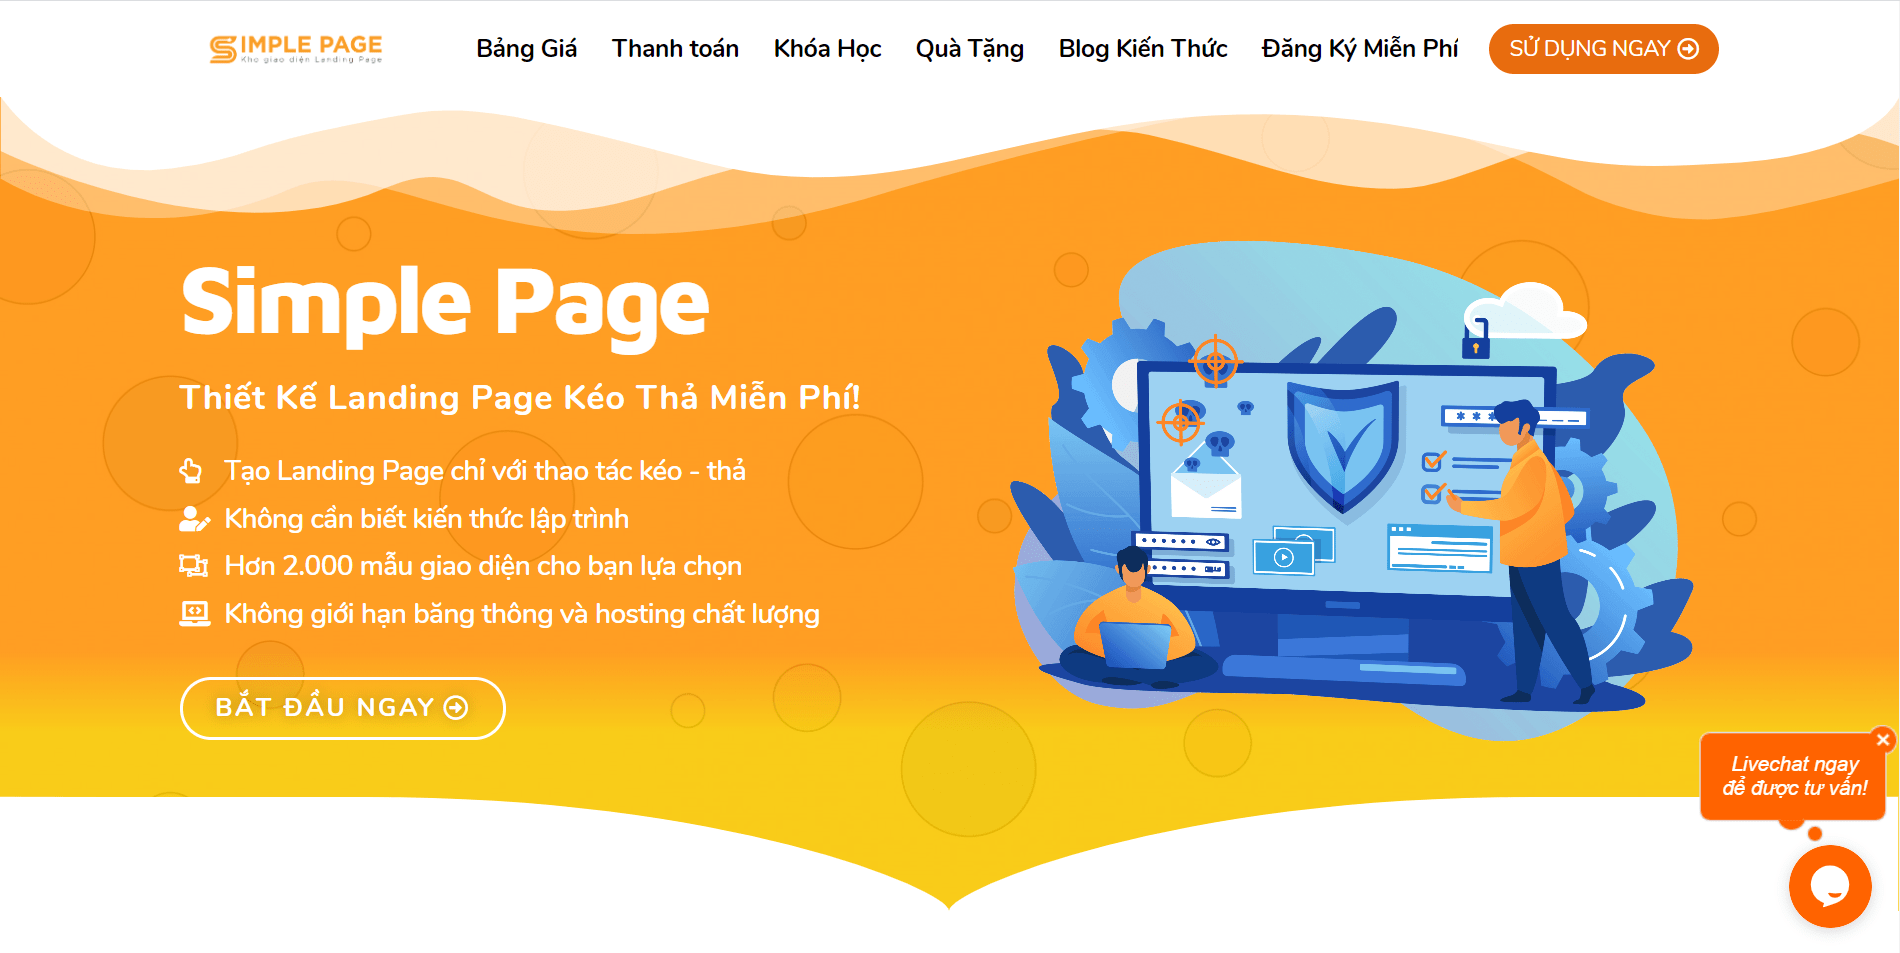 Simple Page - Nền tảng Tạo Landing Page Miễn Phí!